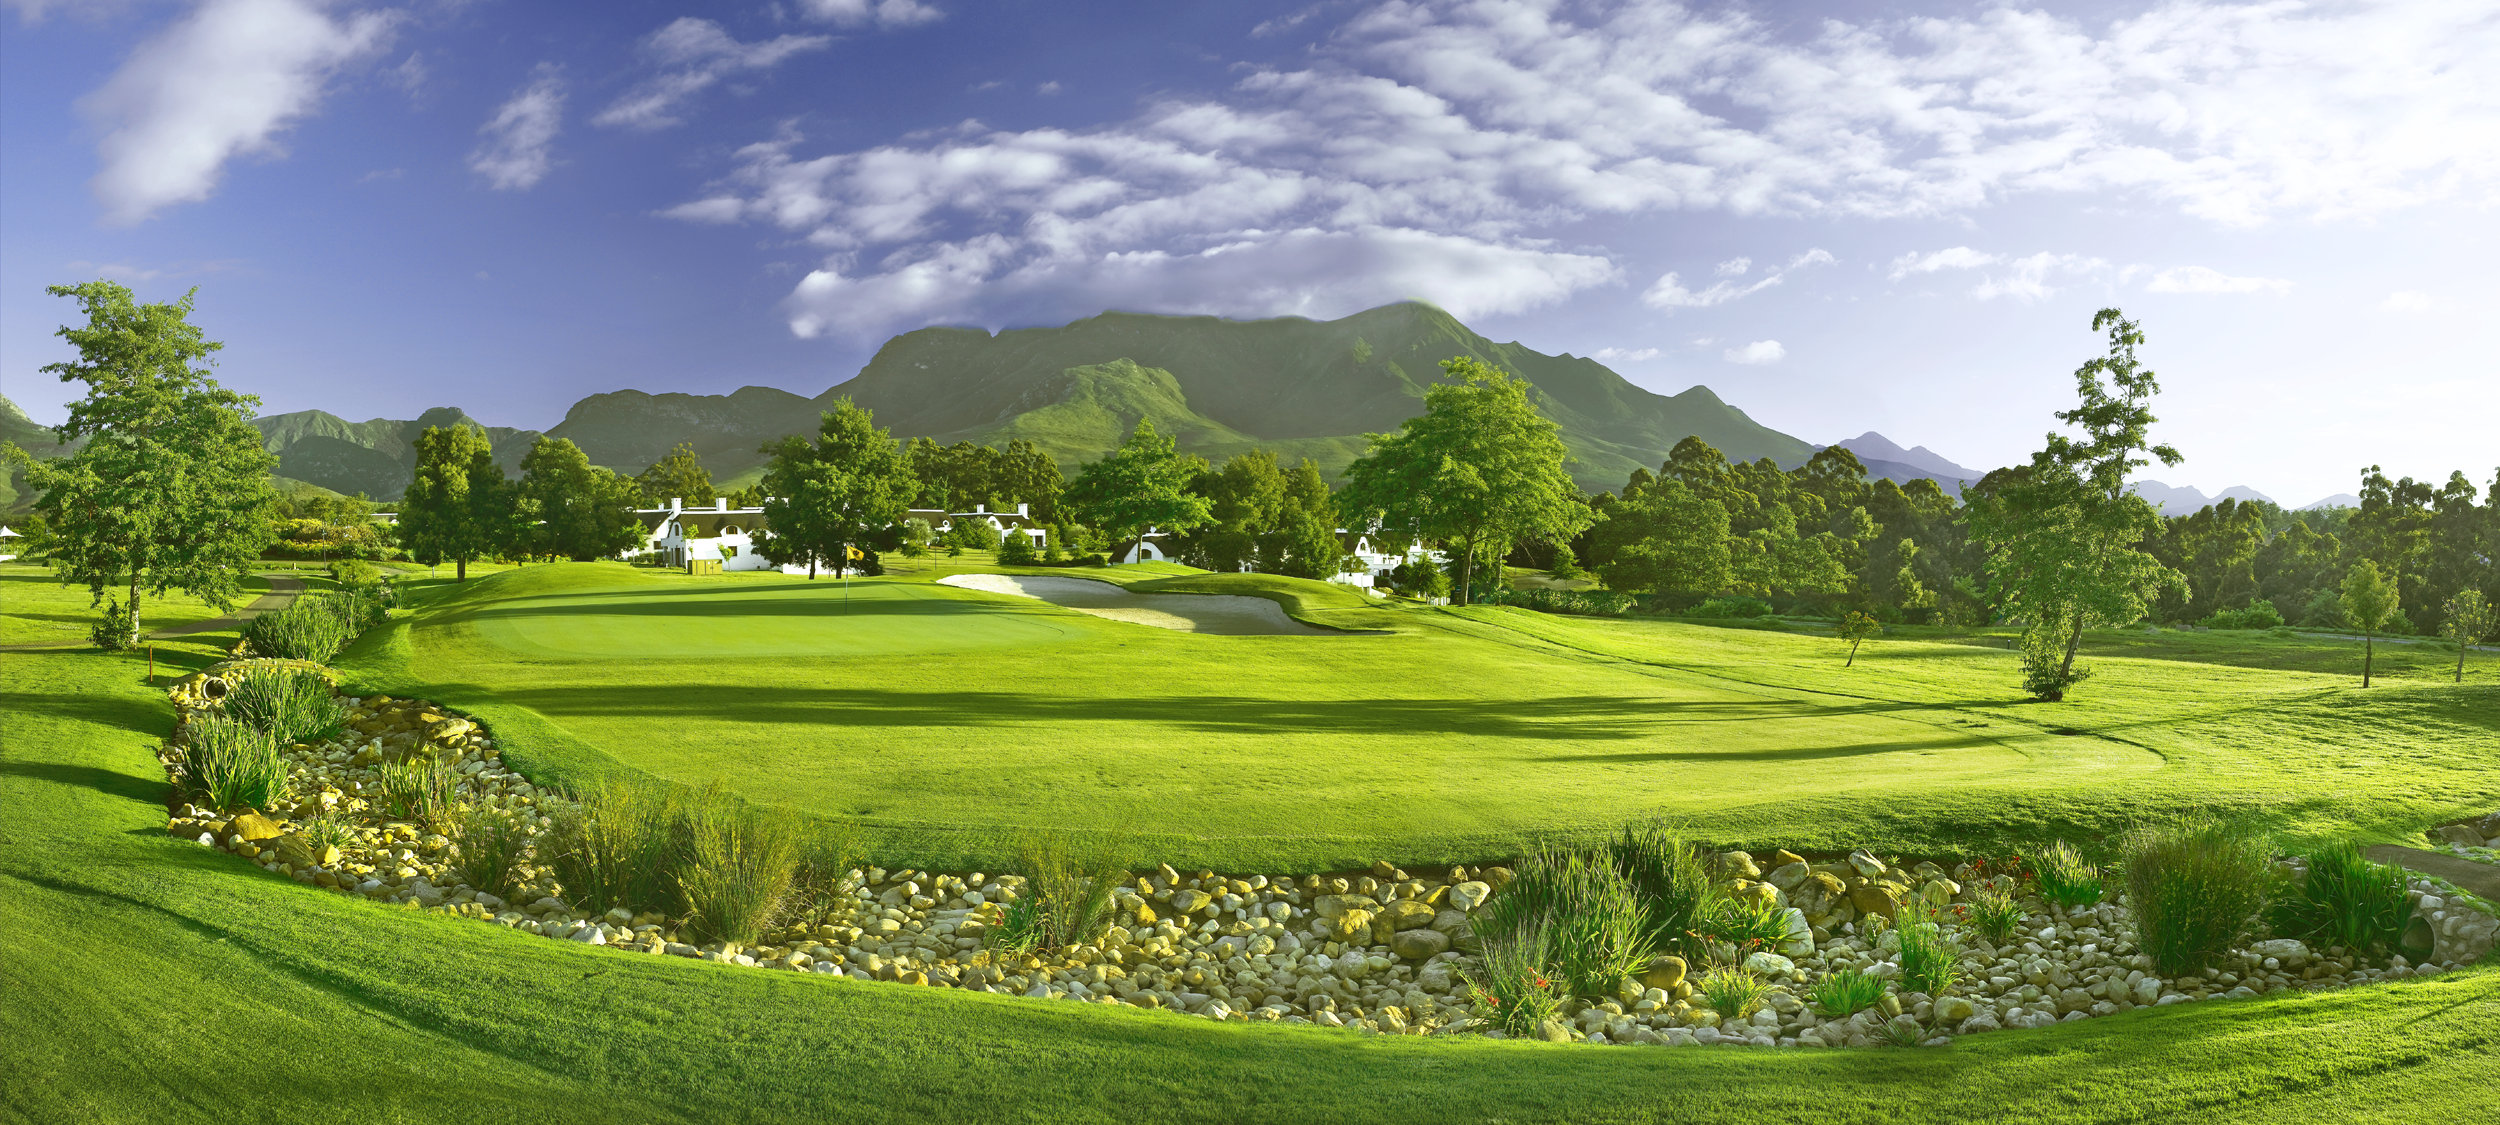 Outeniqua Fancourt Golf Course and Greens